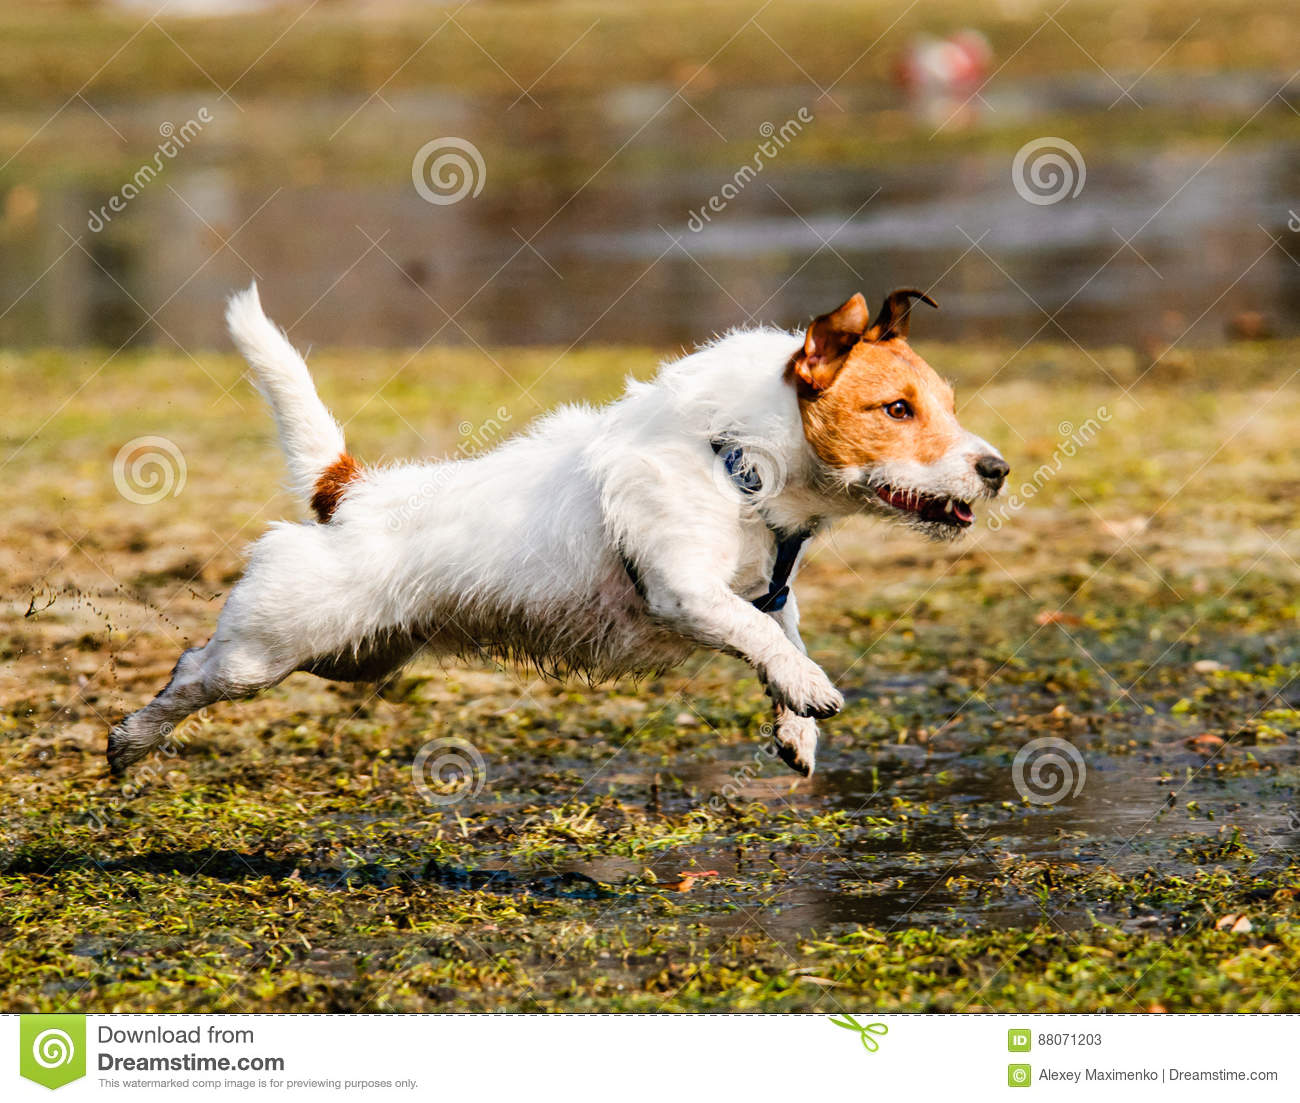 Wet, fluffy and dirty dog running through spring swamp